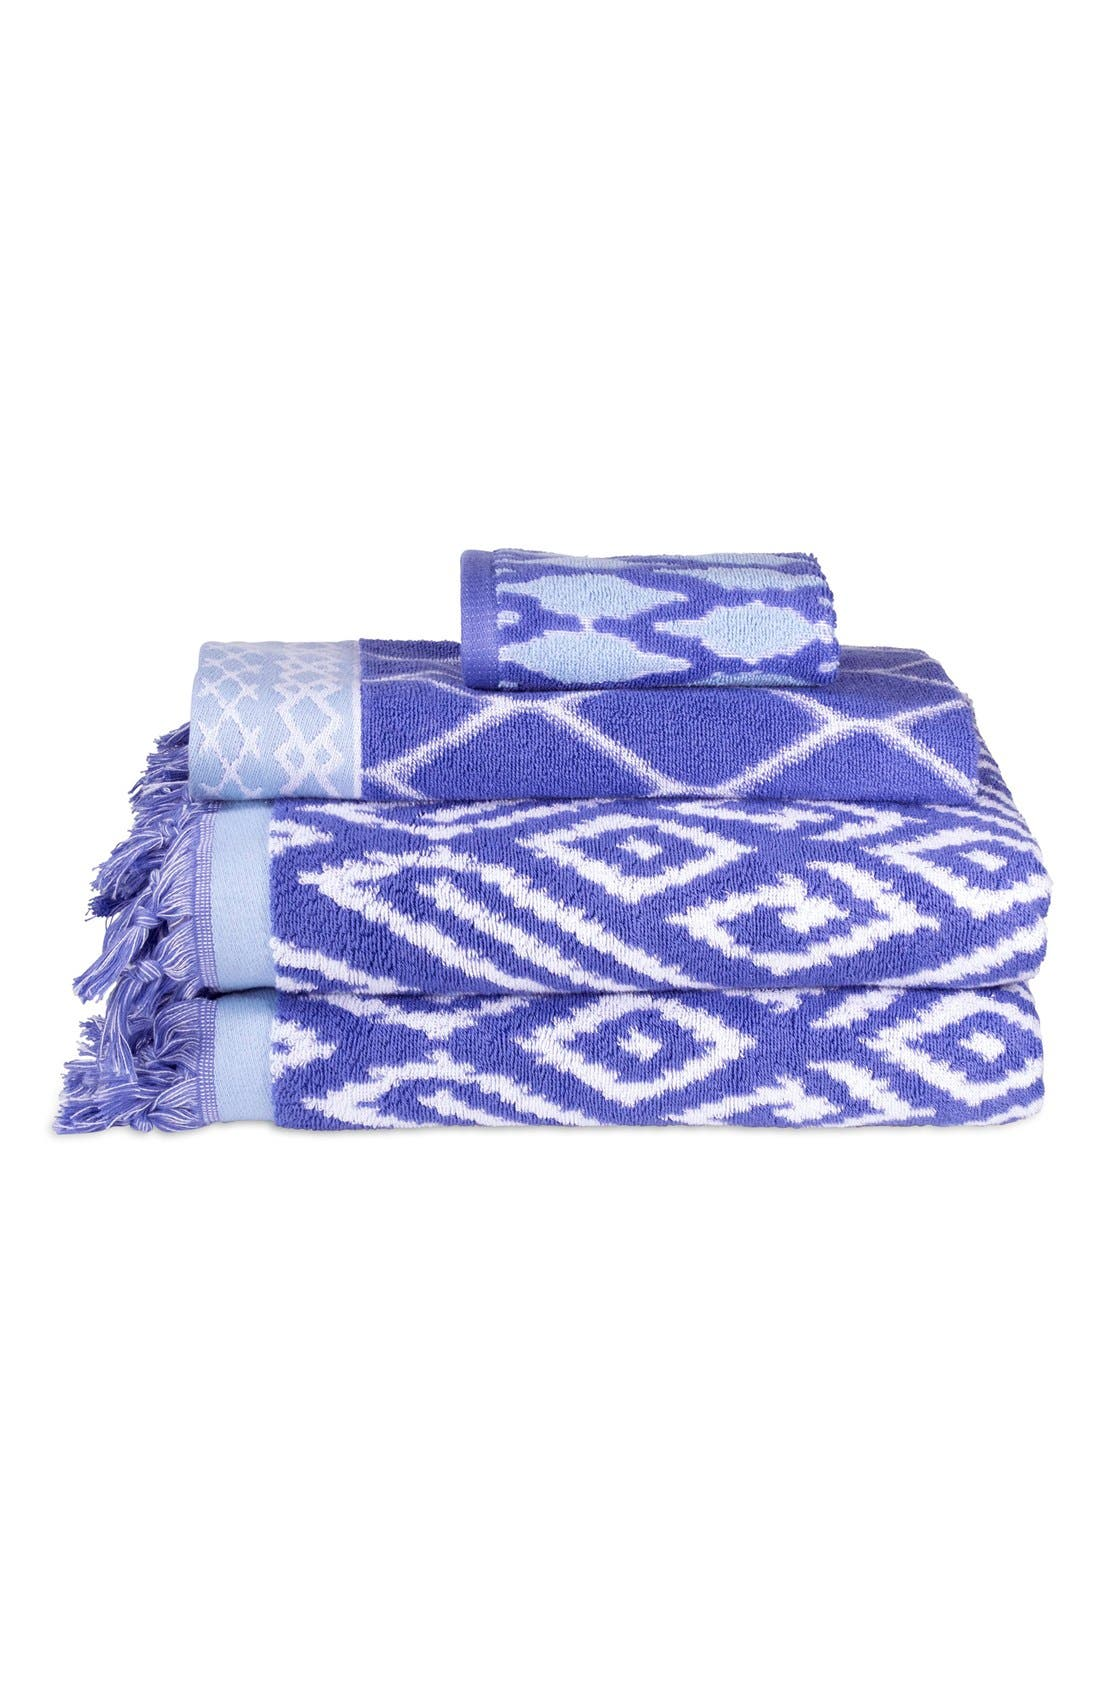 Alternate Image 1 Selected - John Robshaw 'Kalasin' Turkish Cotton Bath Towel